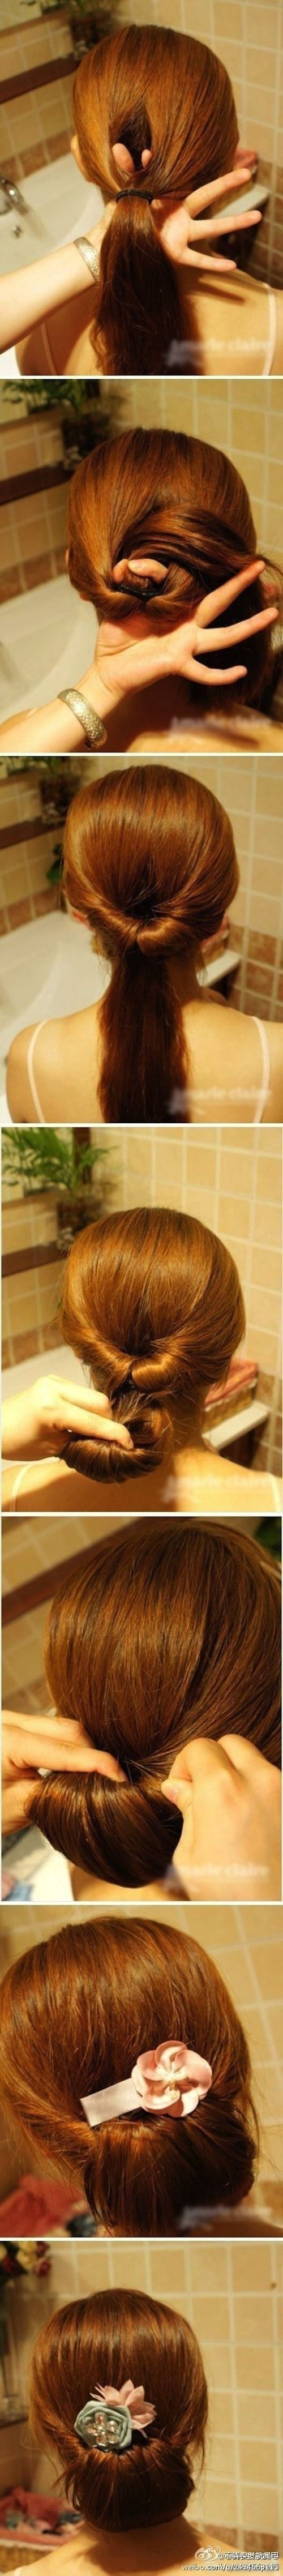 best updo images on pinterest hairstyle ideas hair care and